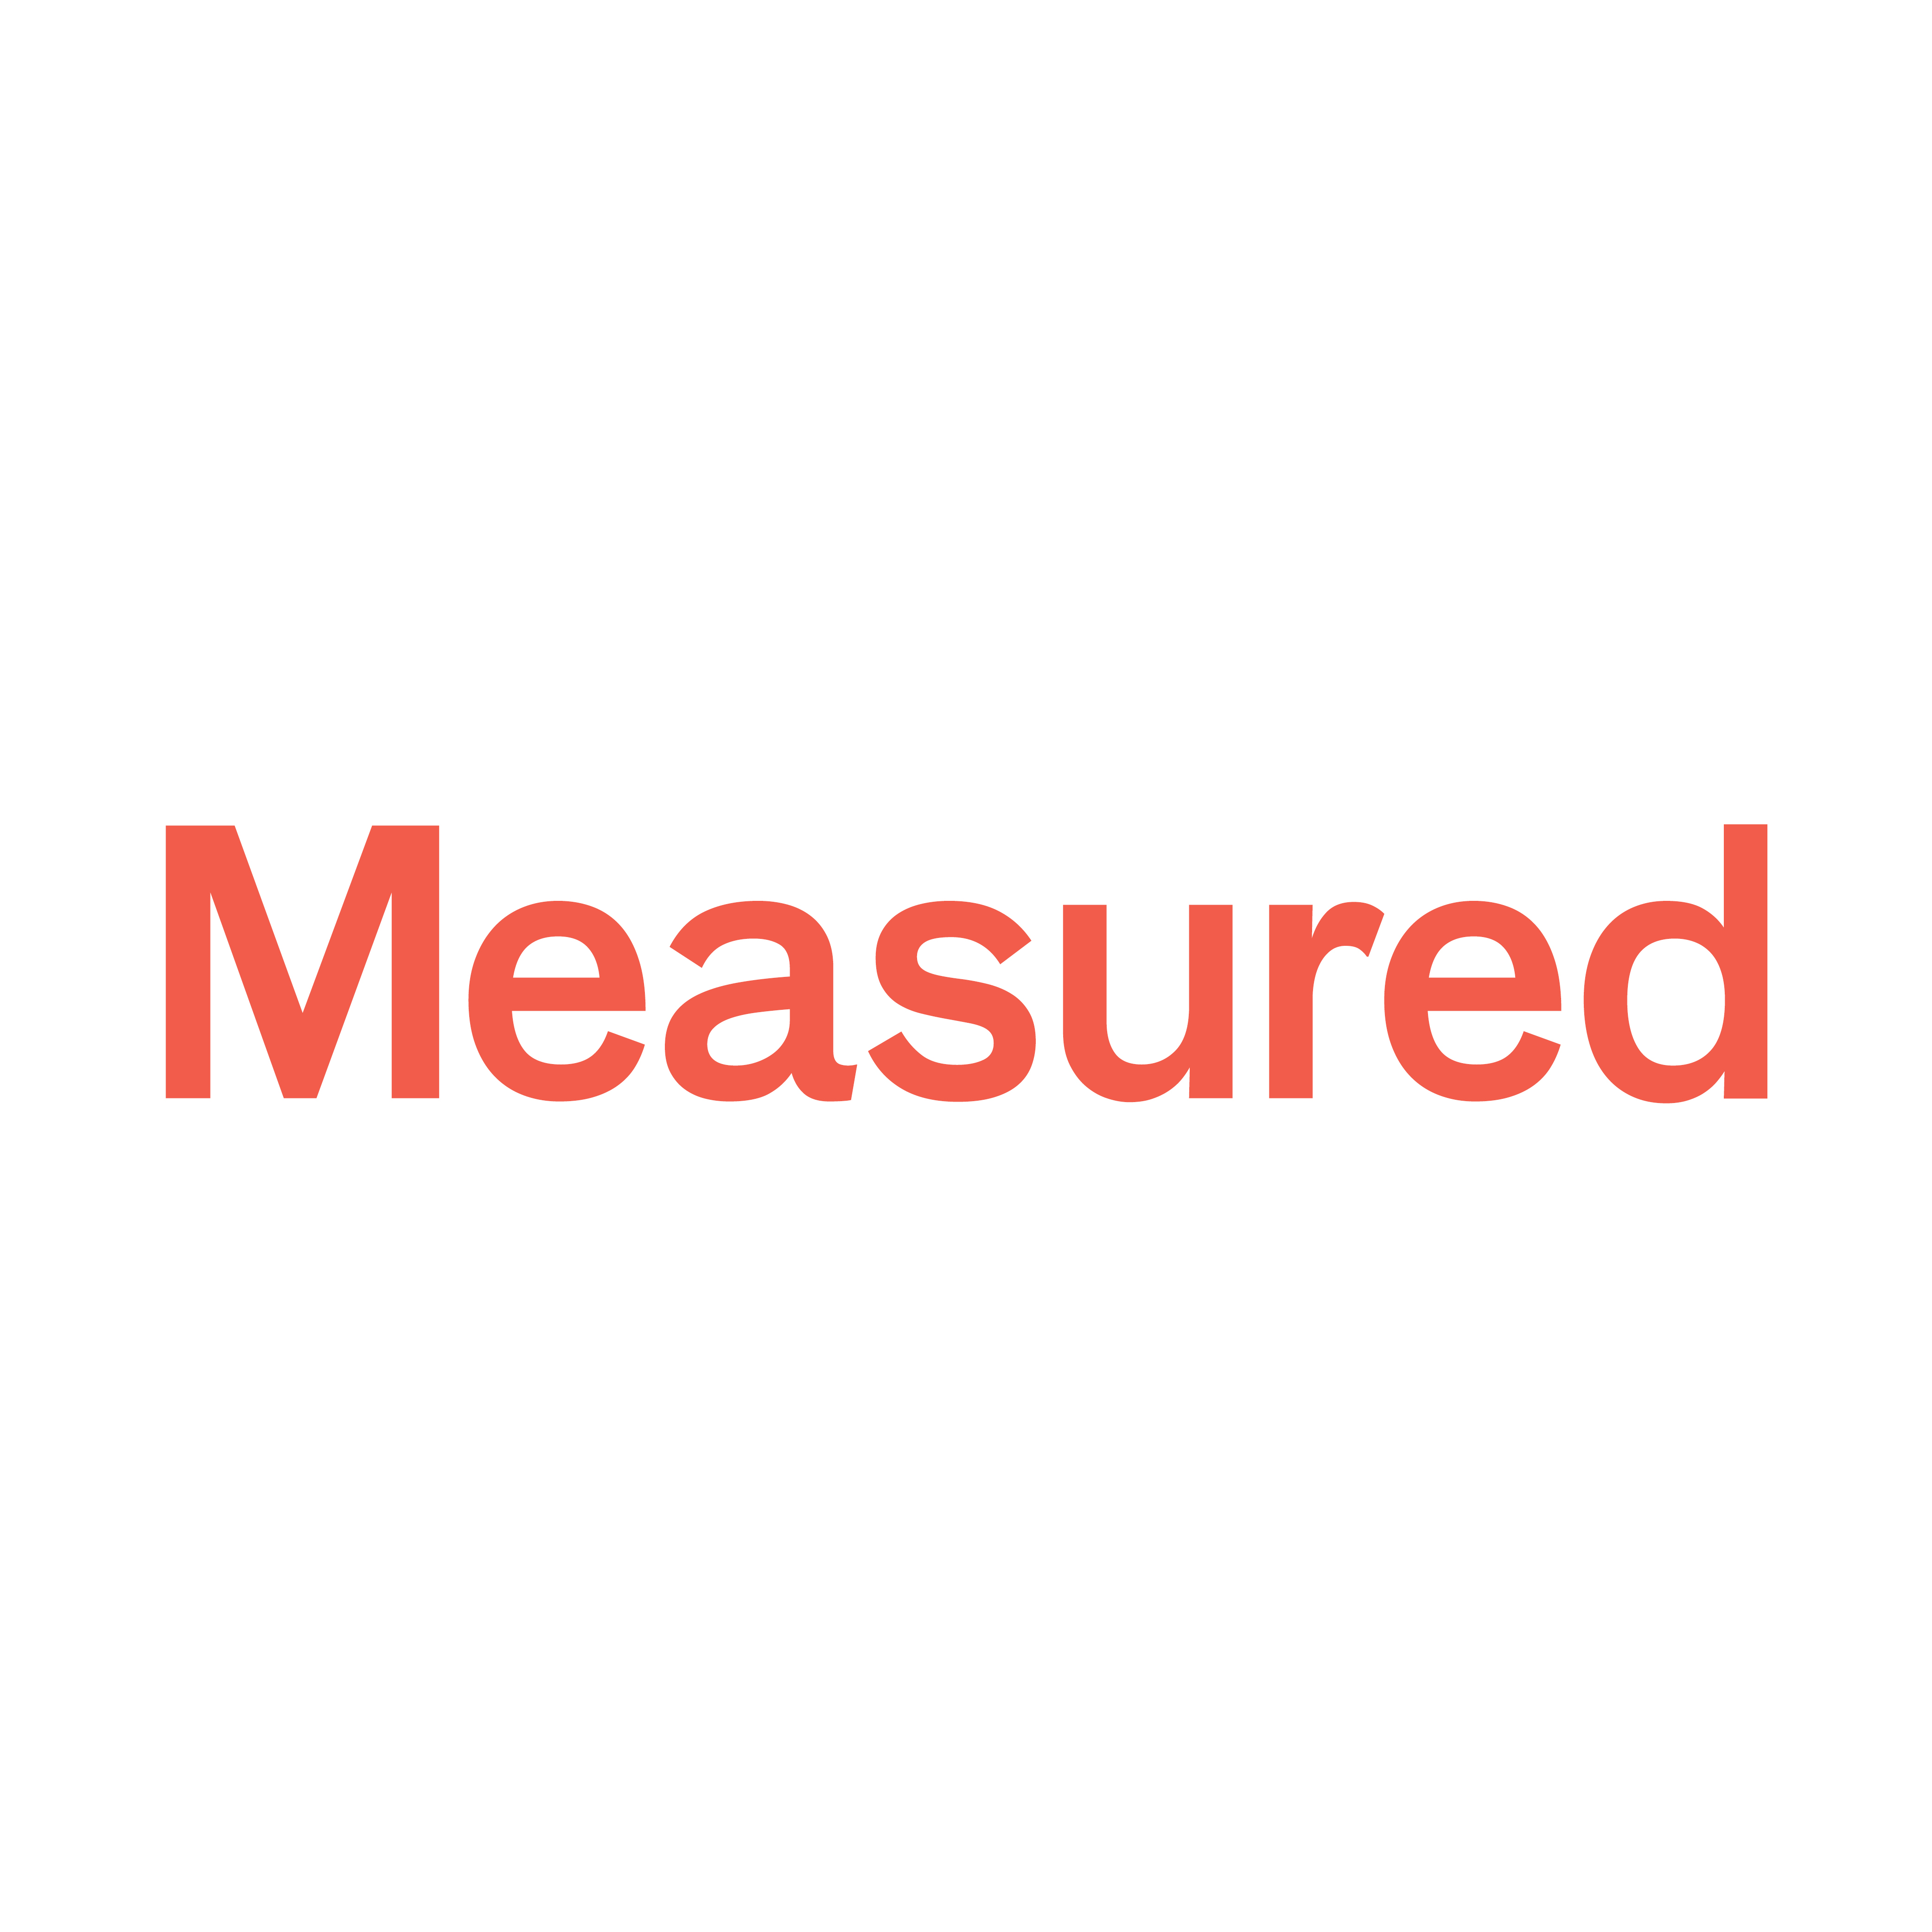 Measured Square Logo